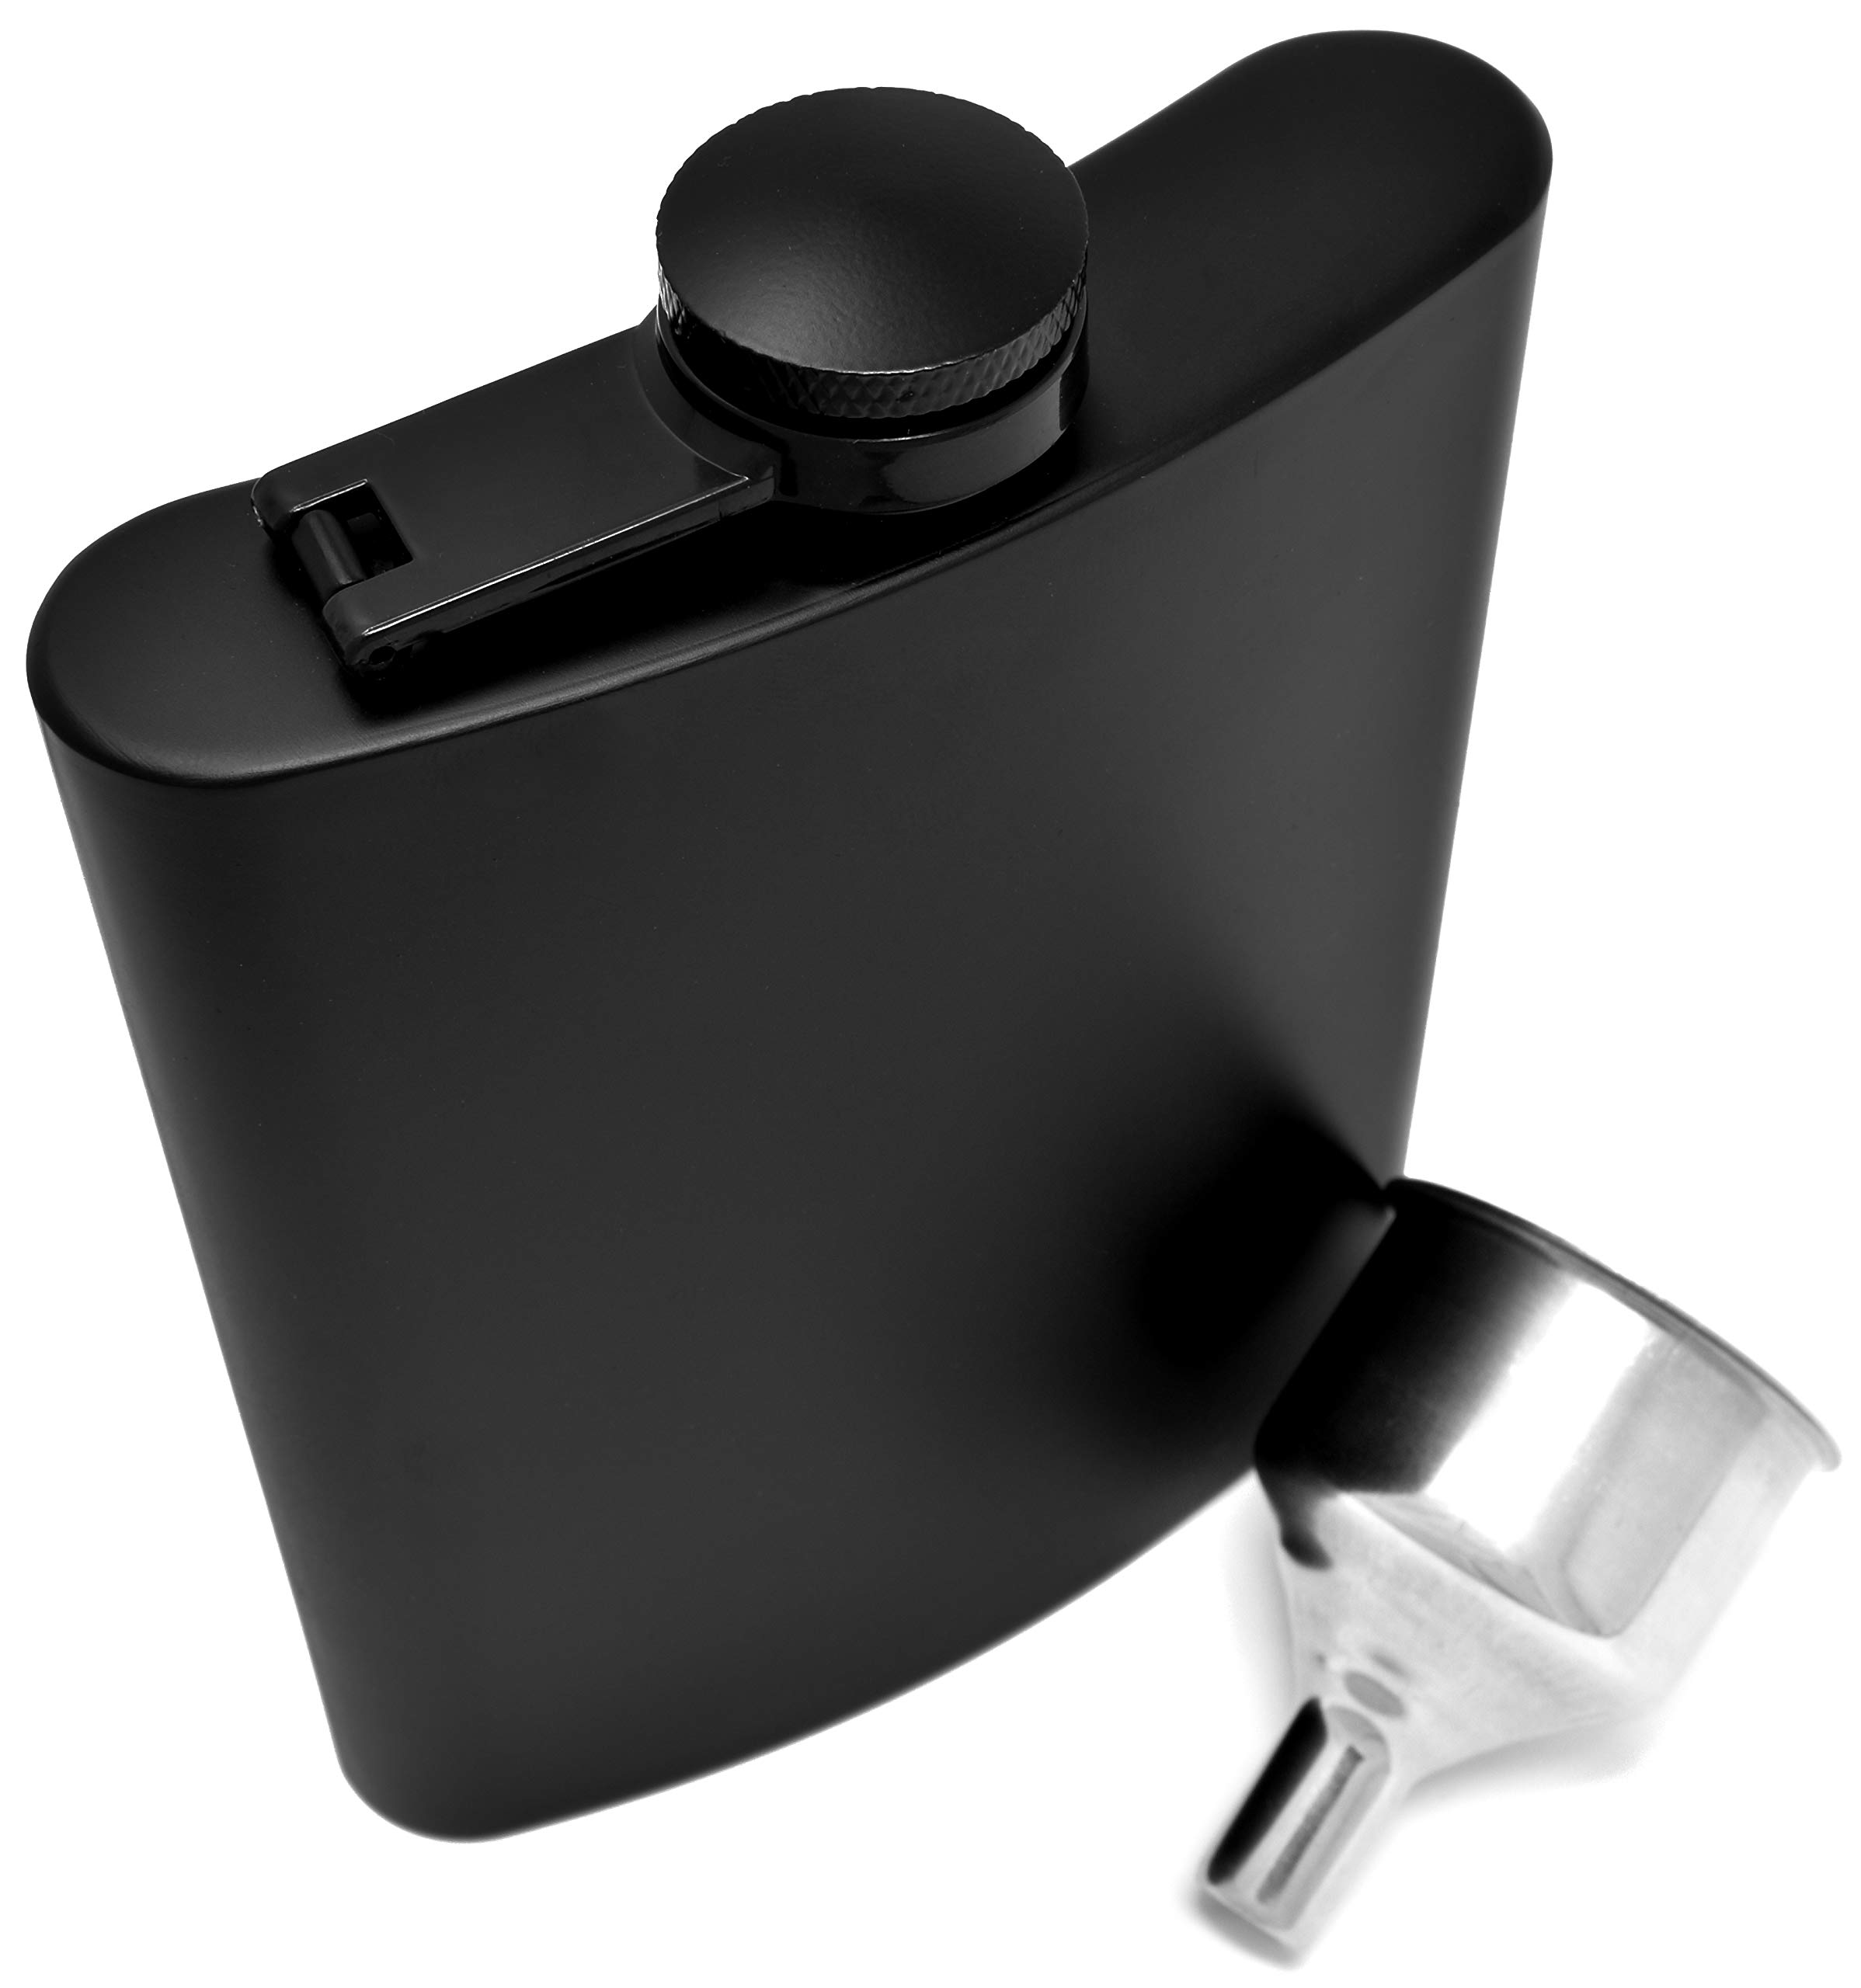 Hip Flask For Liquor 8 oz Stainless Steel Matte Black Leakproof in Premium Gift Box With Big Funnel For Men & Women for Perfecting Your Drinking Experience by IDALIO